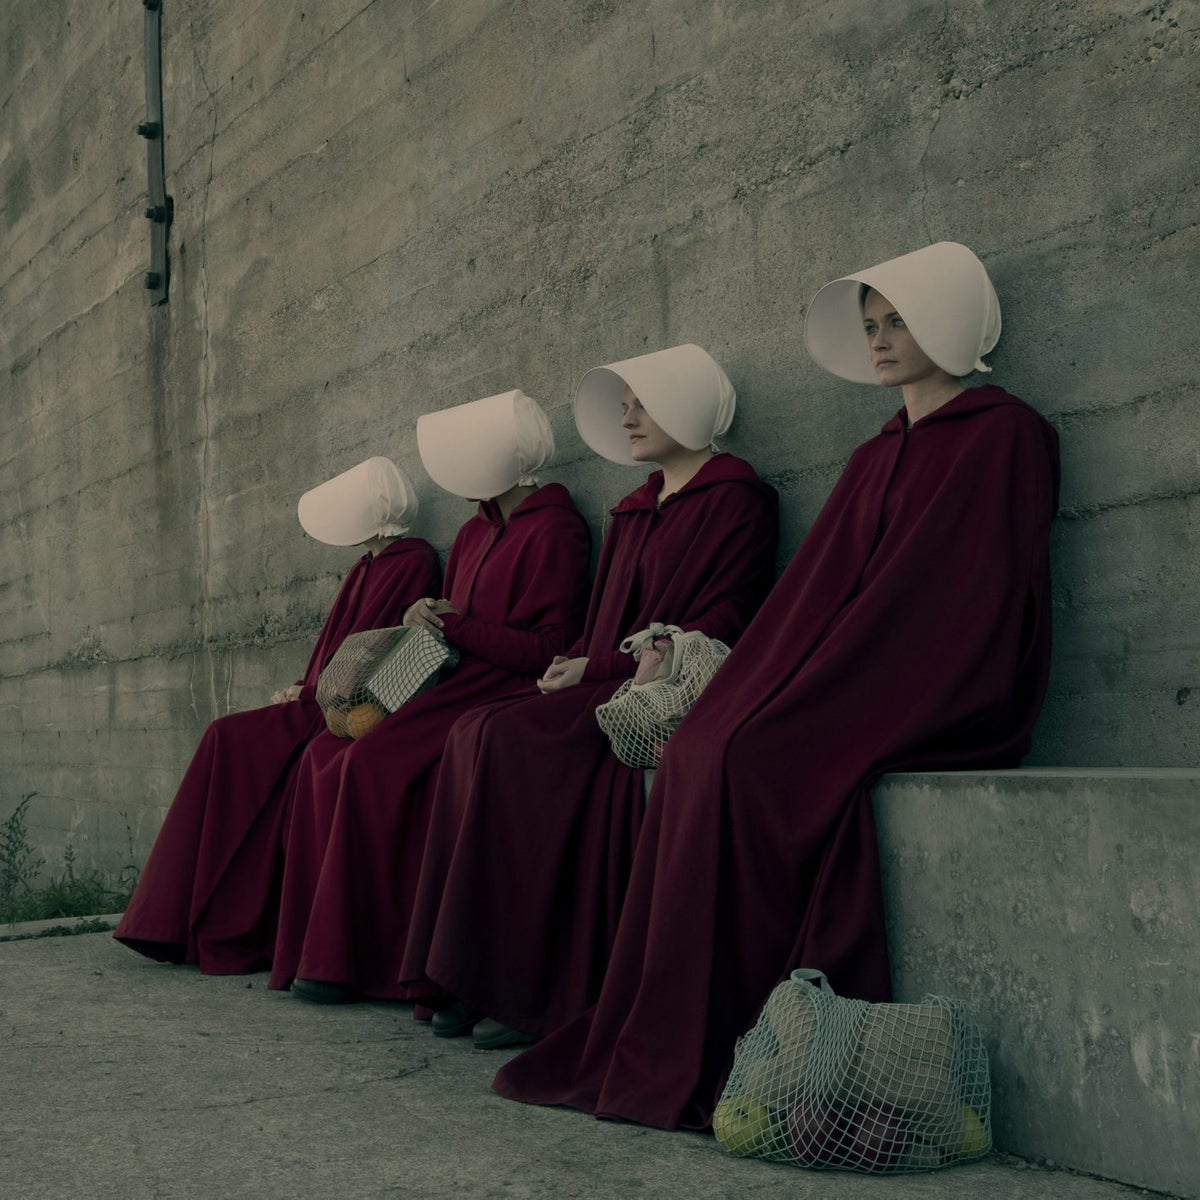 A scene from the Hulu adaptation of 'The Handmaid's Tale.'